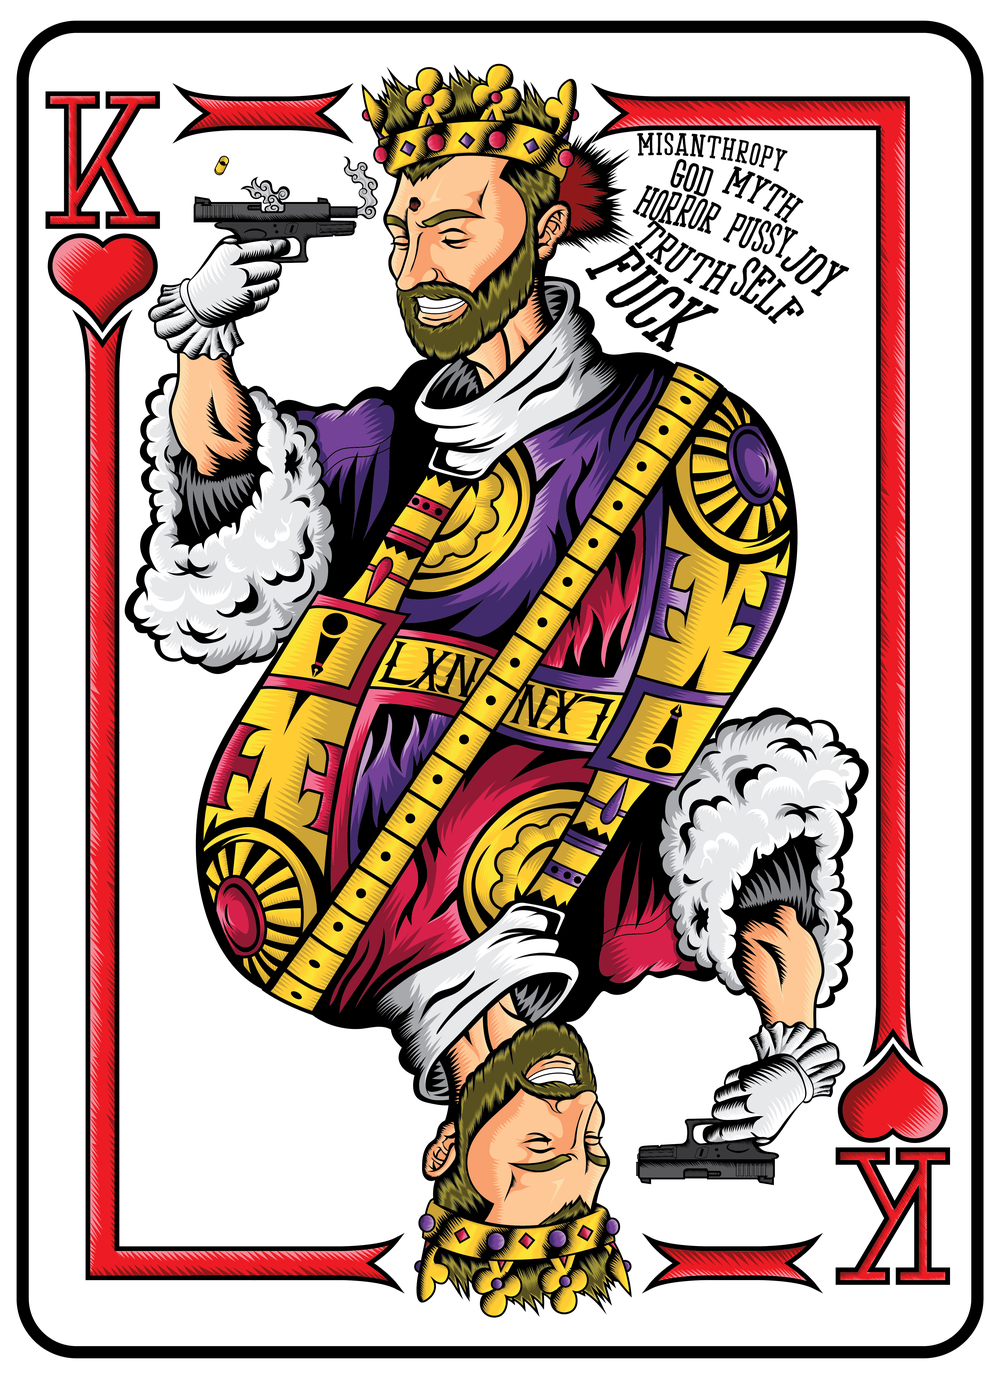 king-of-hearts-illustration-matt-dorman-comedy-comedian-lasvegas-vegas-roberto-orozco-design-studio-artist-art-digital-graphic-design-playing-card-illustrative-red-purple-crown-royal-royalty-glock-lxn-full-color.jpg